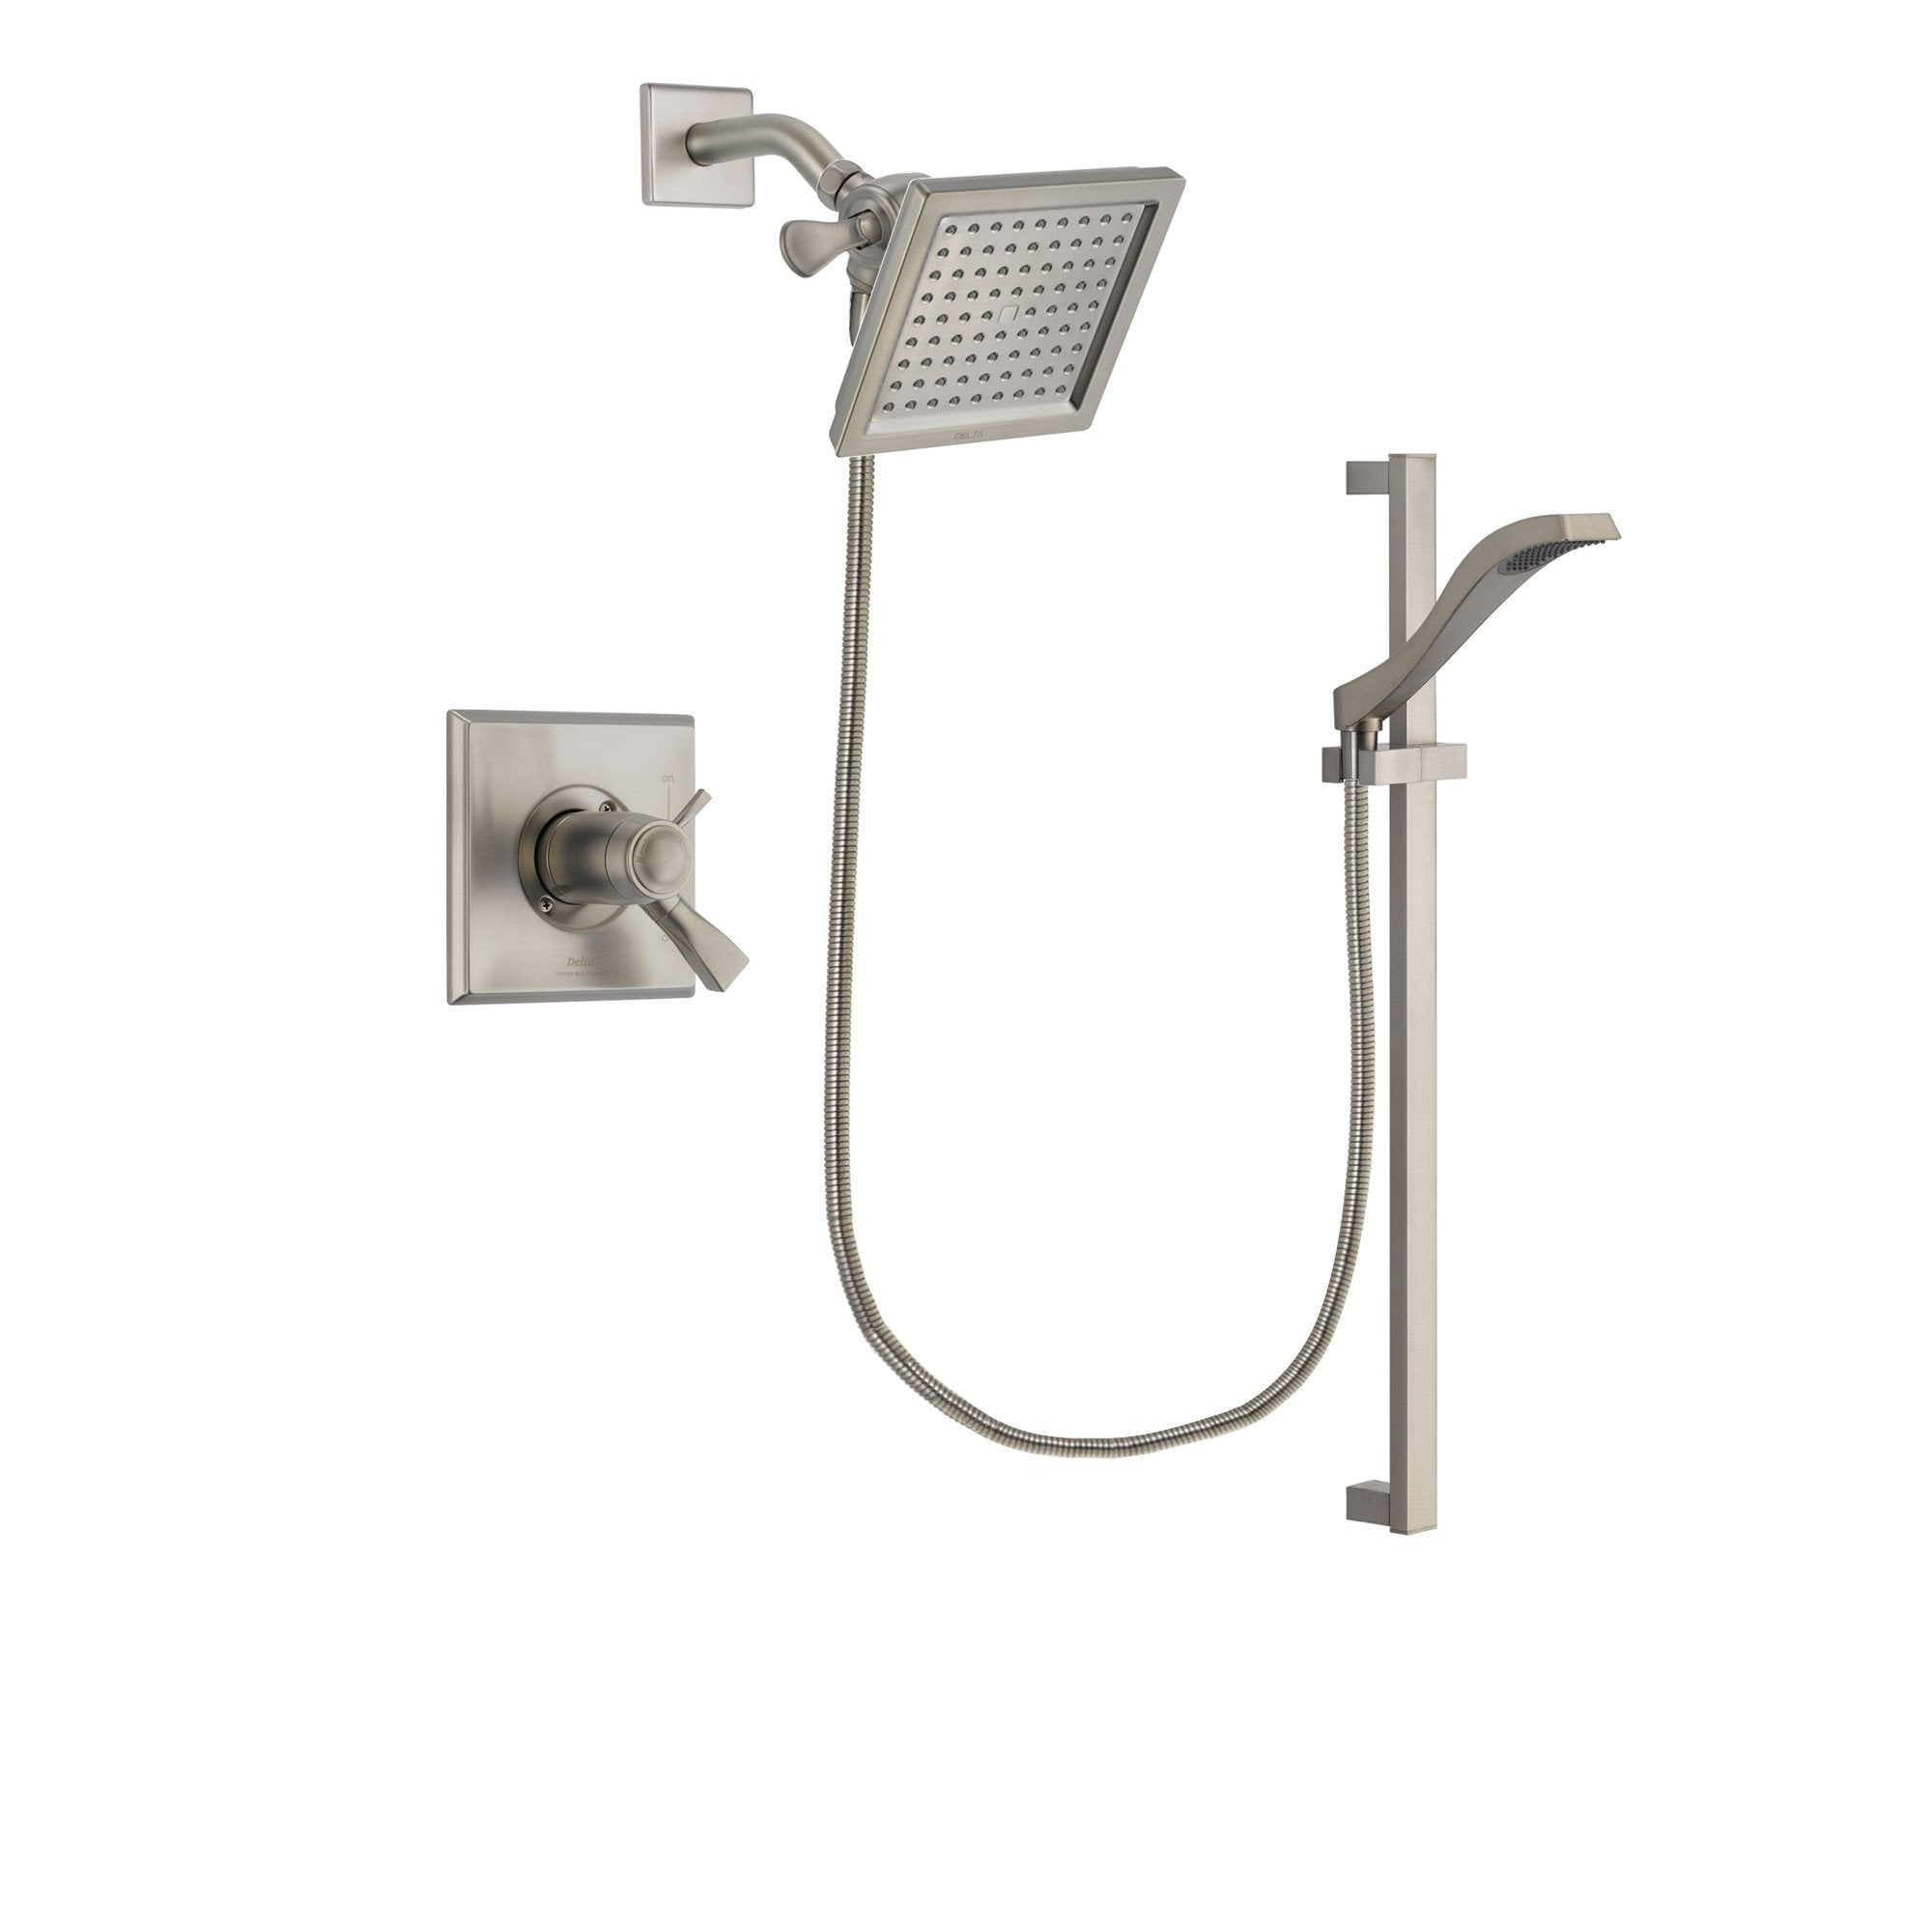 Delta Dryden Stainless Steel Finish Shower Faucet System w/ Hand Spray DSP2238V